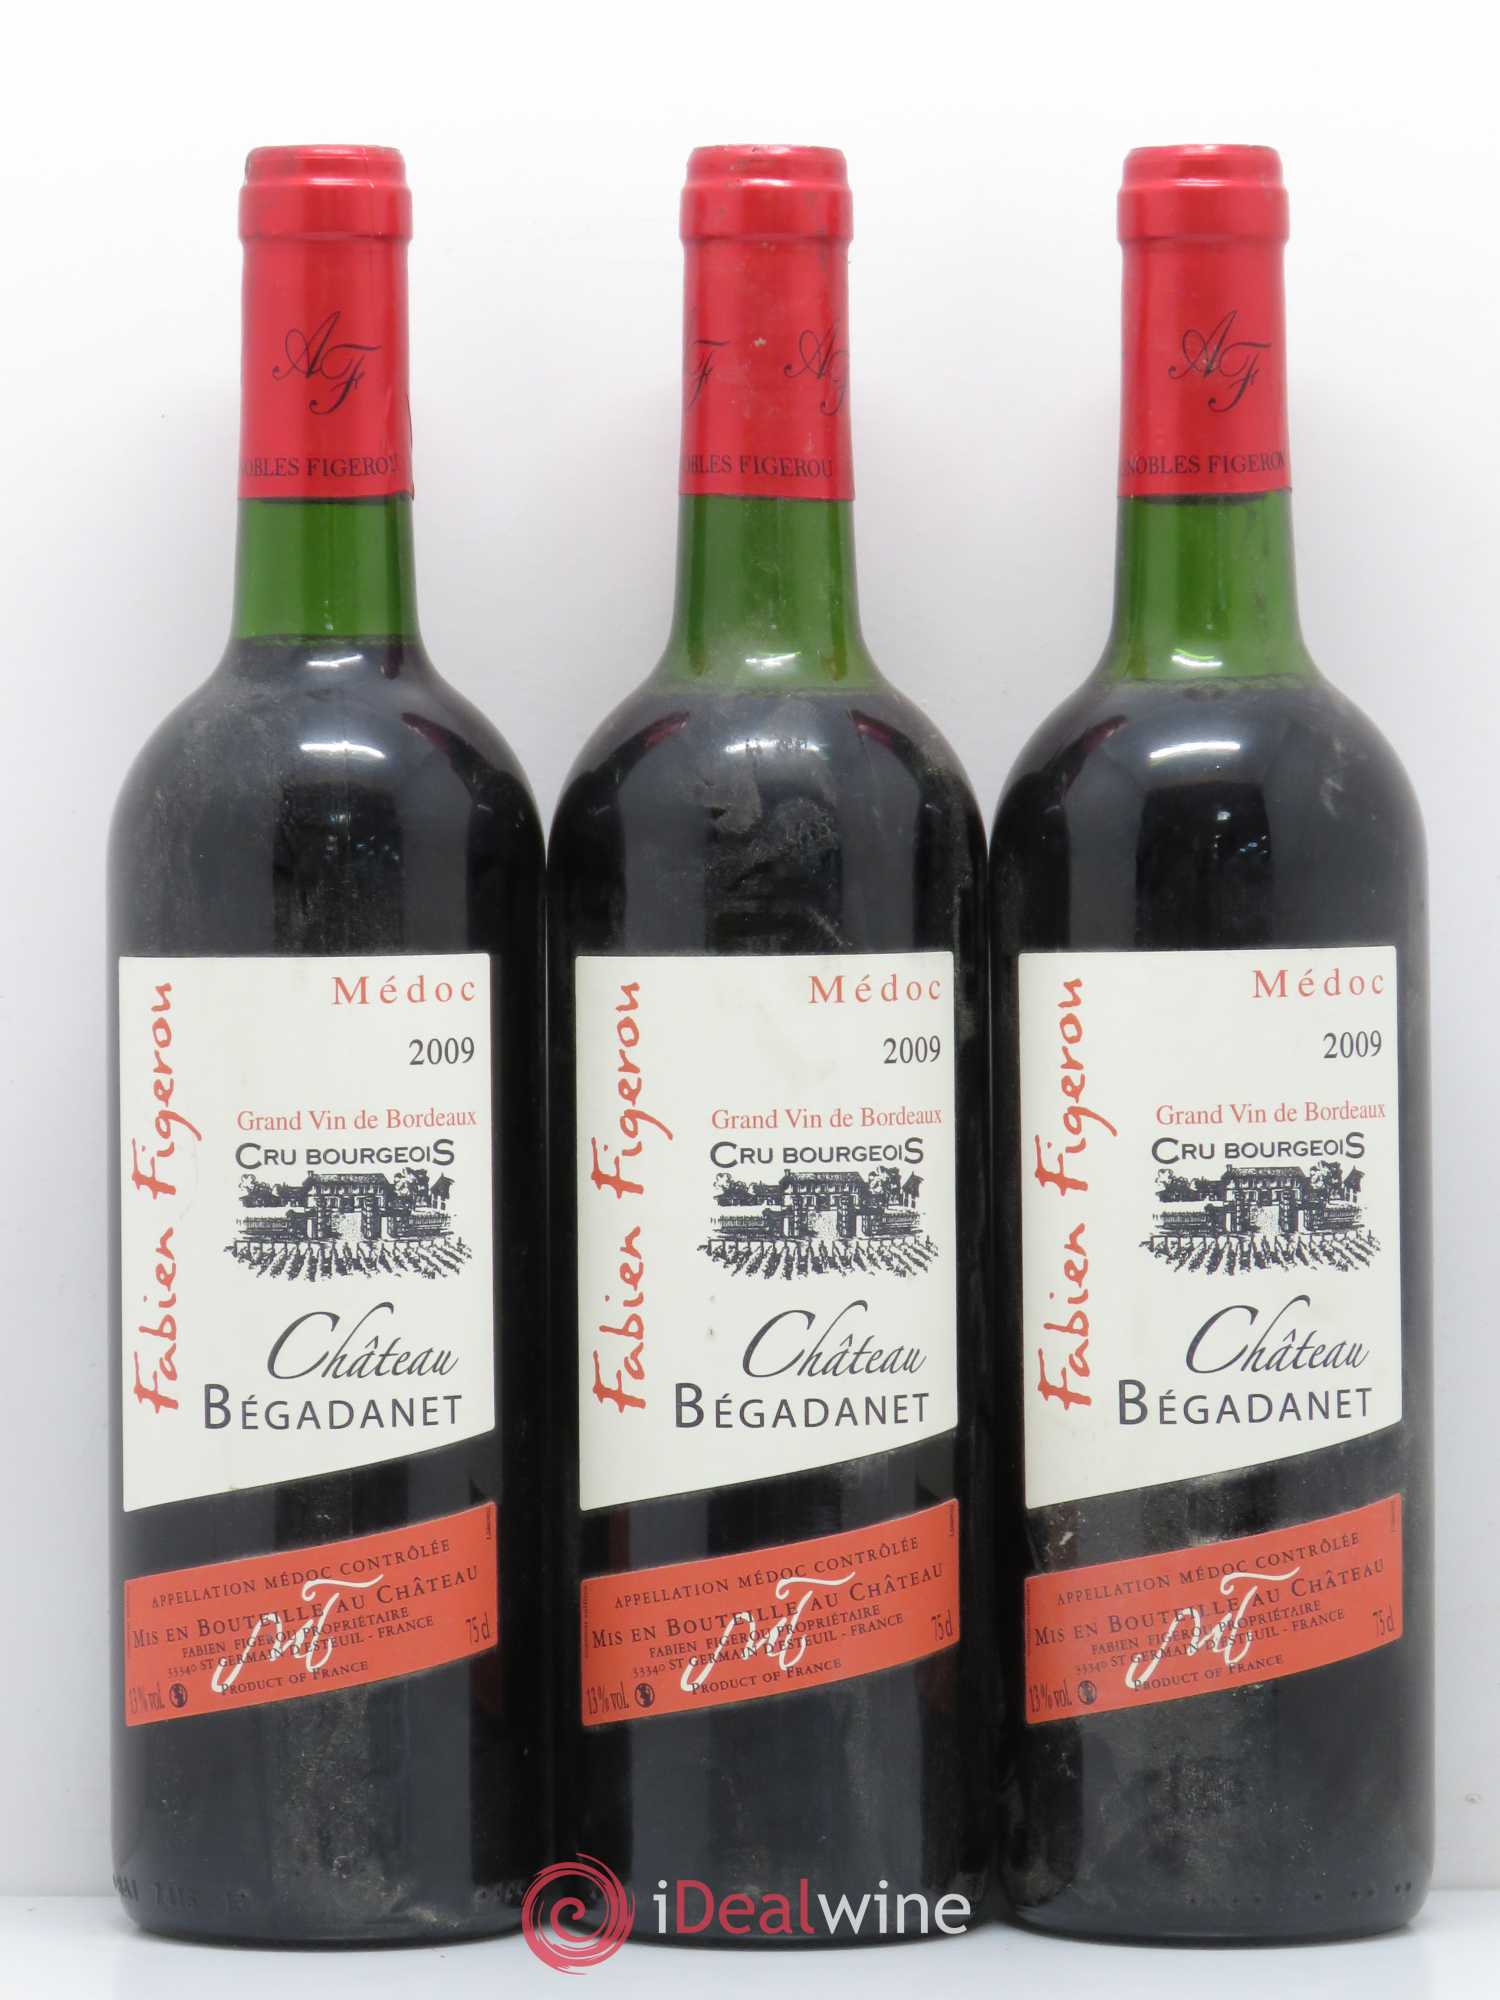 Médoc Château Begadanet (no reserve) 2009 - Lot of 3 Bottles